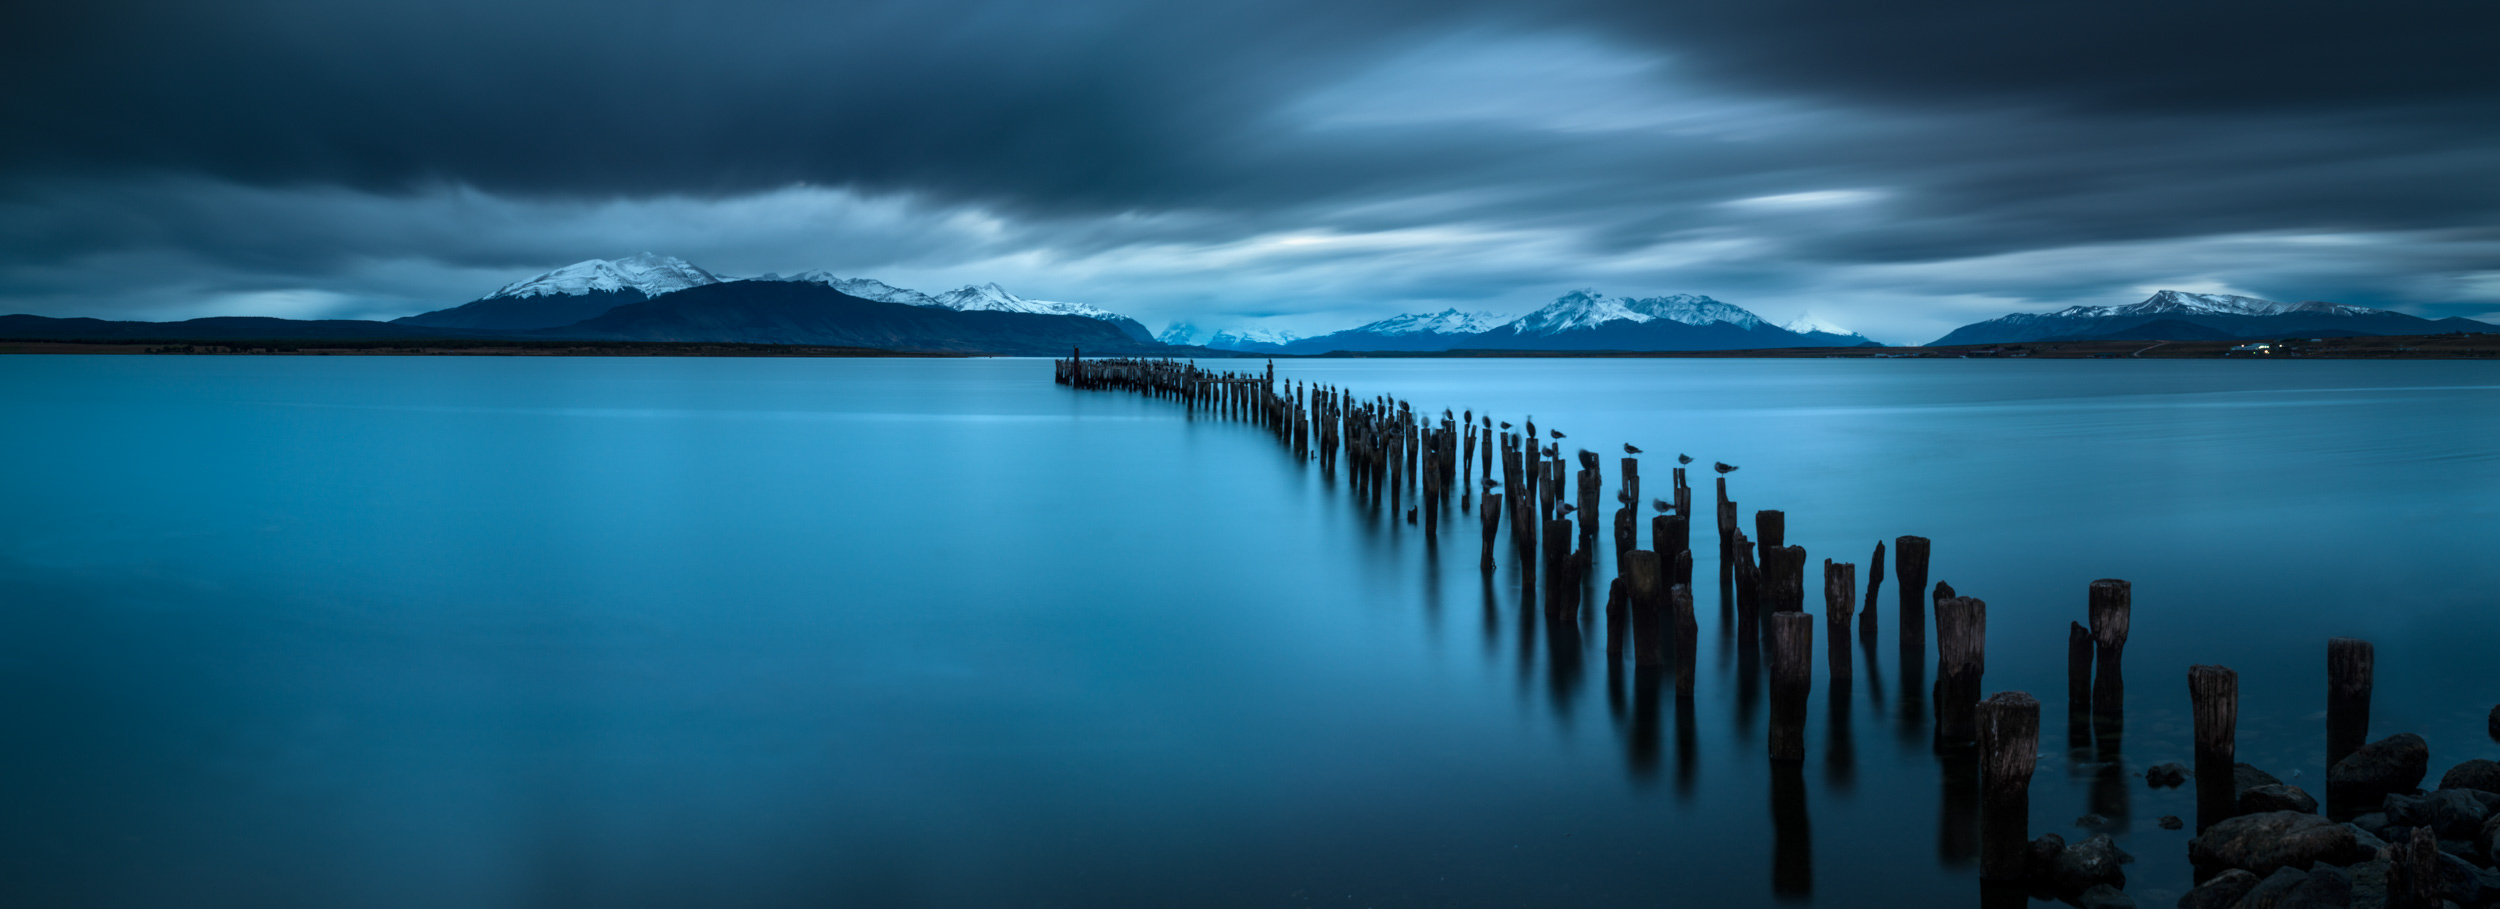 dusk-puerto-natales-patagonia-chile-south-america-tranquil-panoramic